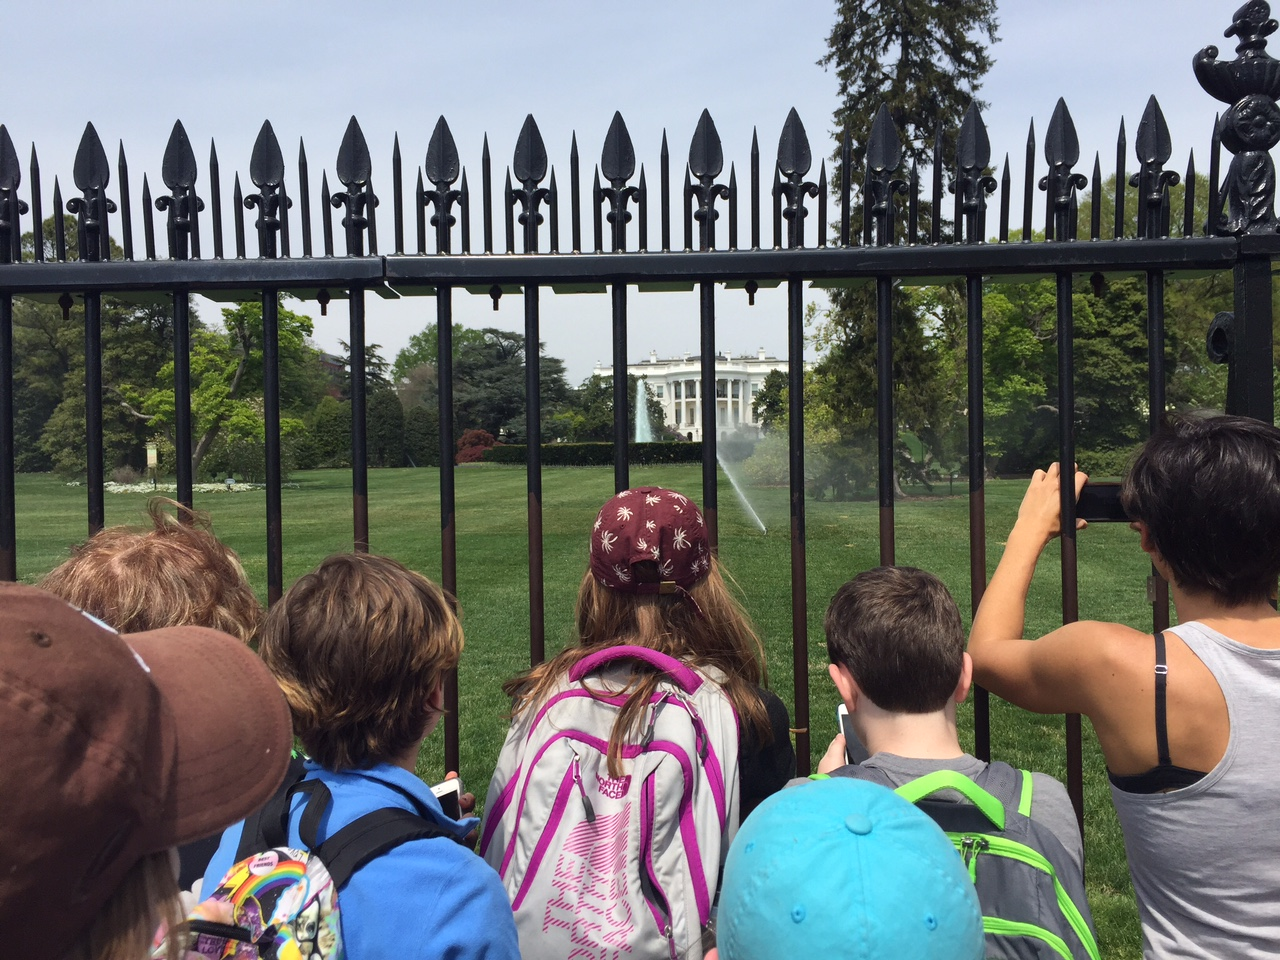 HMJDS 8th Grade Washington D.C Trip - Day 3